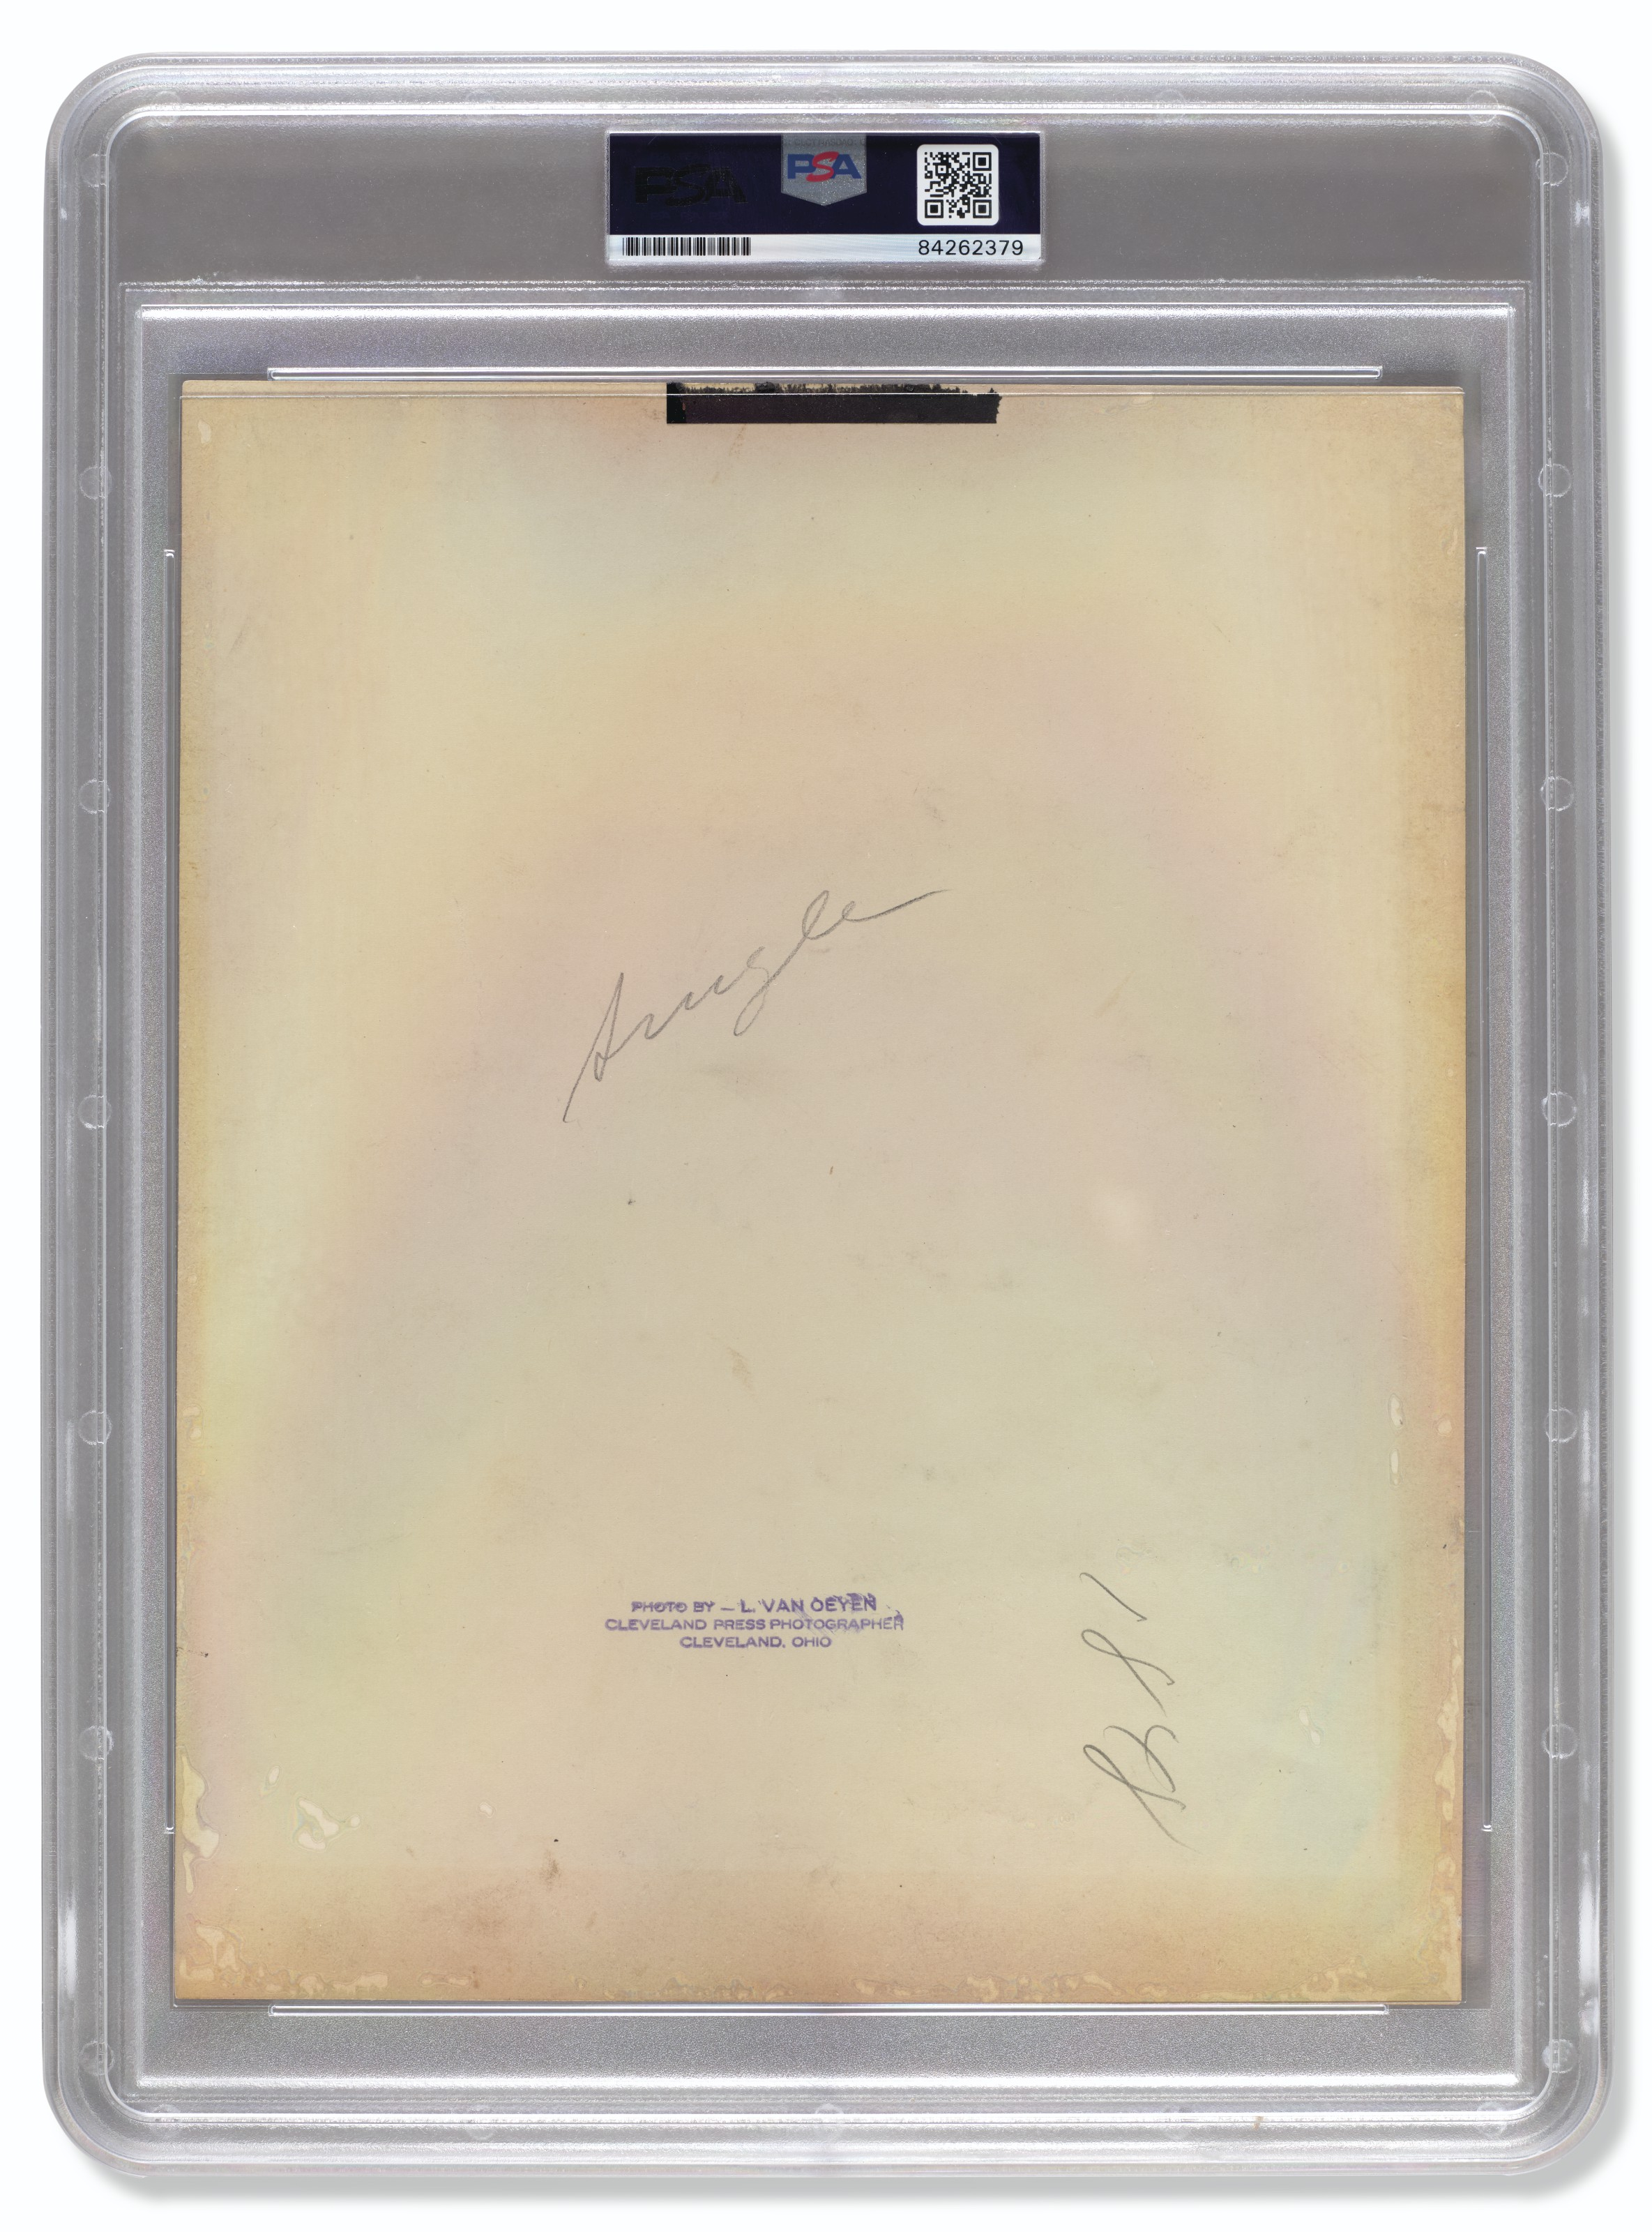 Rare Babe Ruth And Lou Gehrig Autographed Photograph by Louis Van Oeyen c.1927 (PSA/DNA 7.5 NM+)